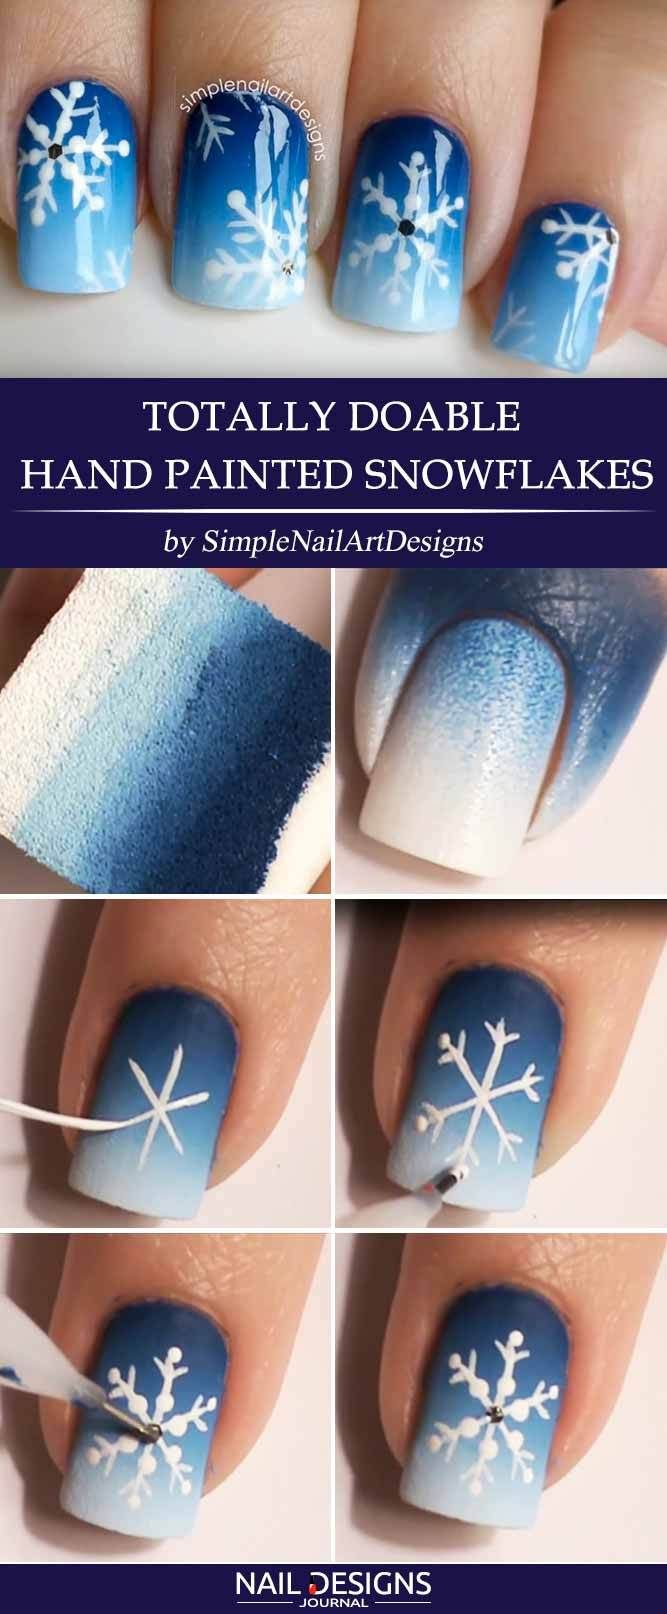 Totally Doable Hand Painted Snowflakes Snowflake Nail Design Snowflake Nail Art Nail Designs